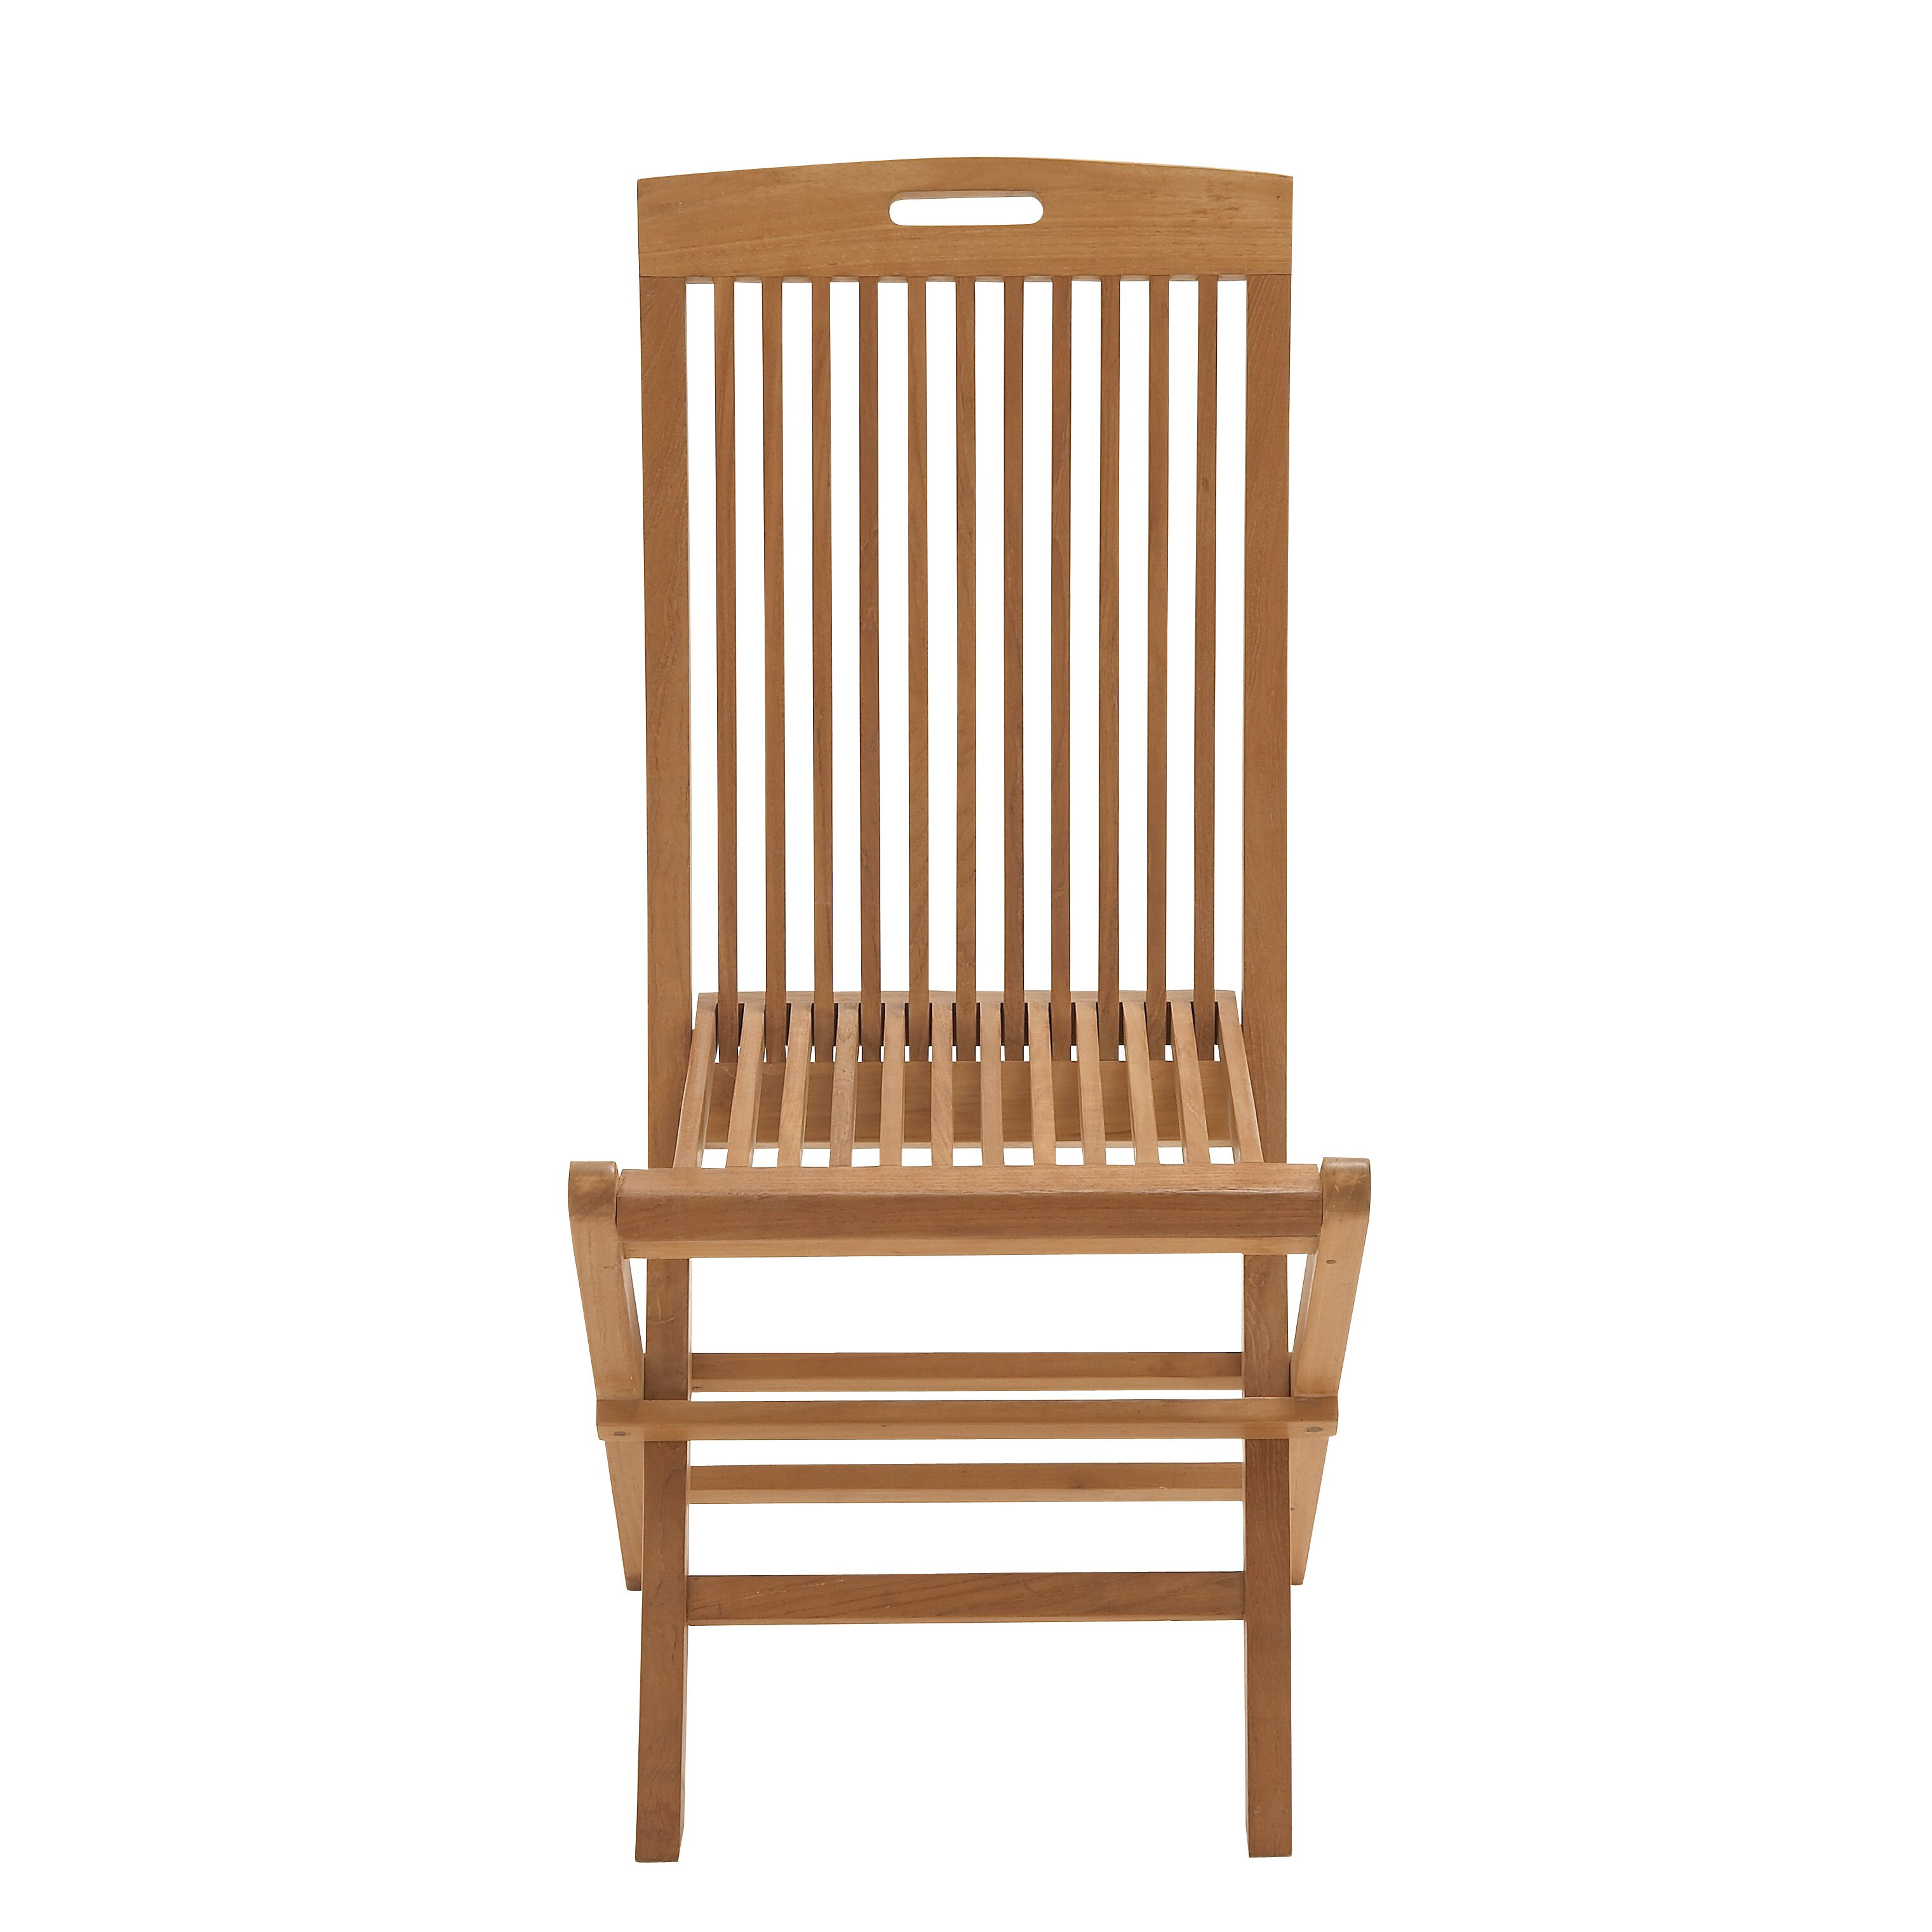 Woodland Imports fortable Wood Teak Folding Chair & Reviews